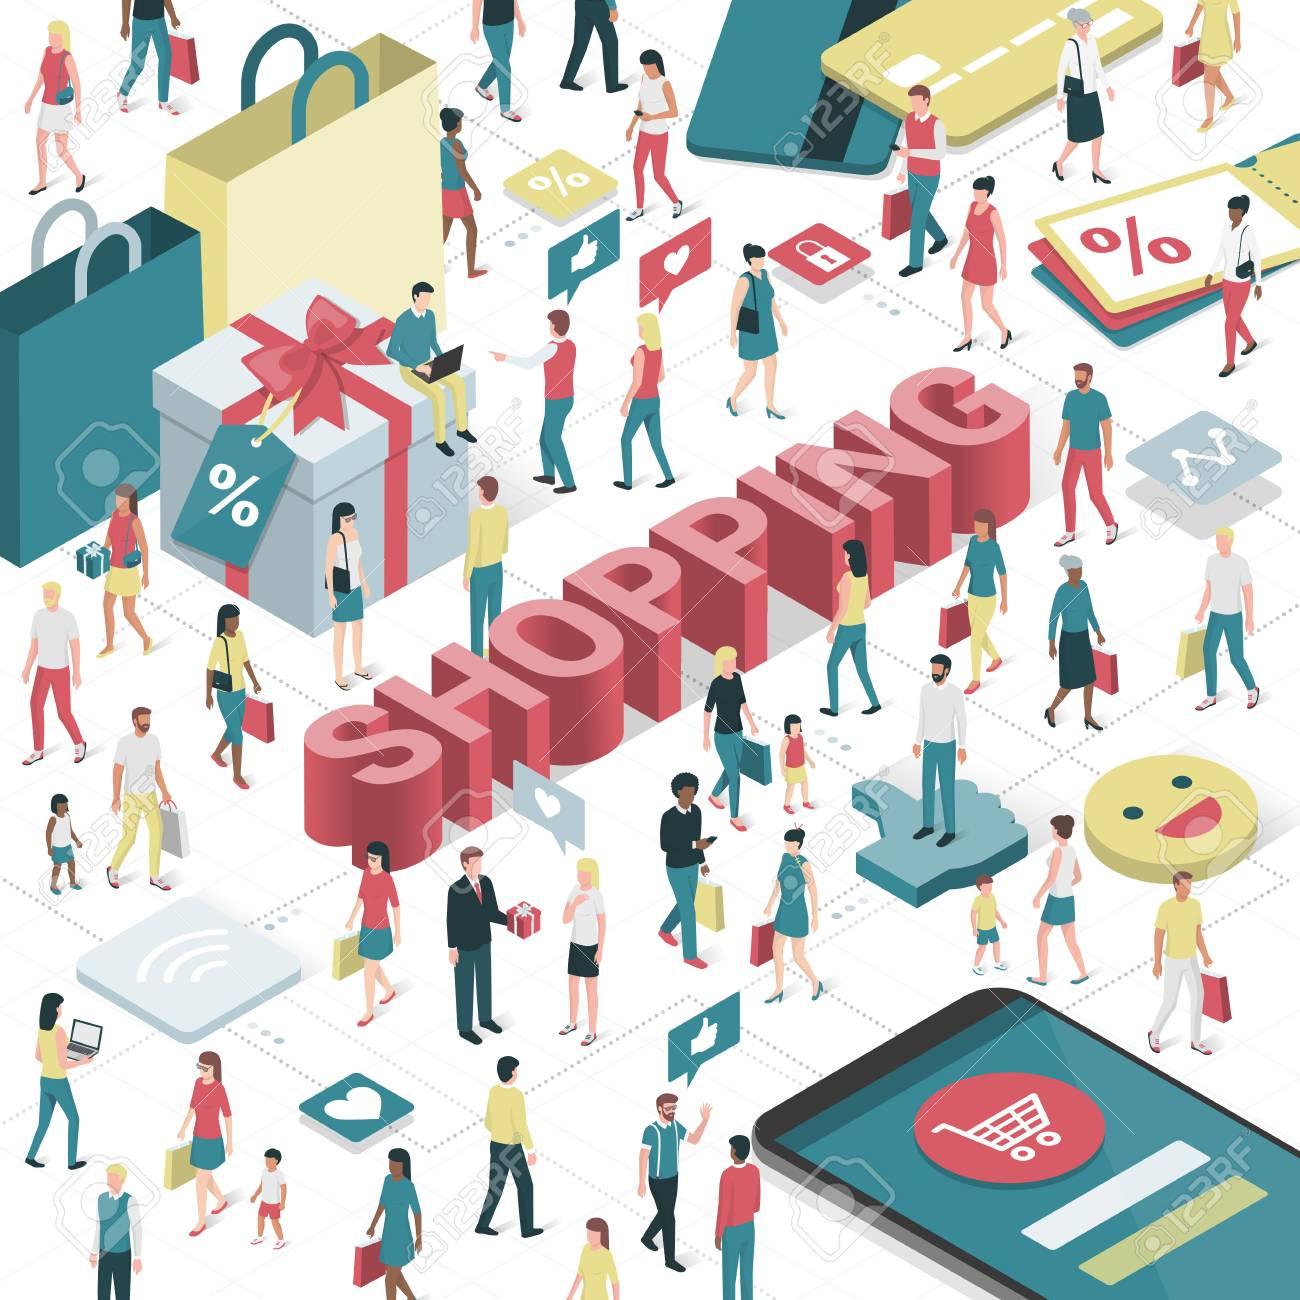 People enjoying shopping online and purchasing products: technology, social media and retail concept - 79965332